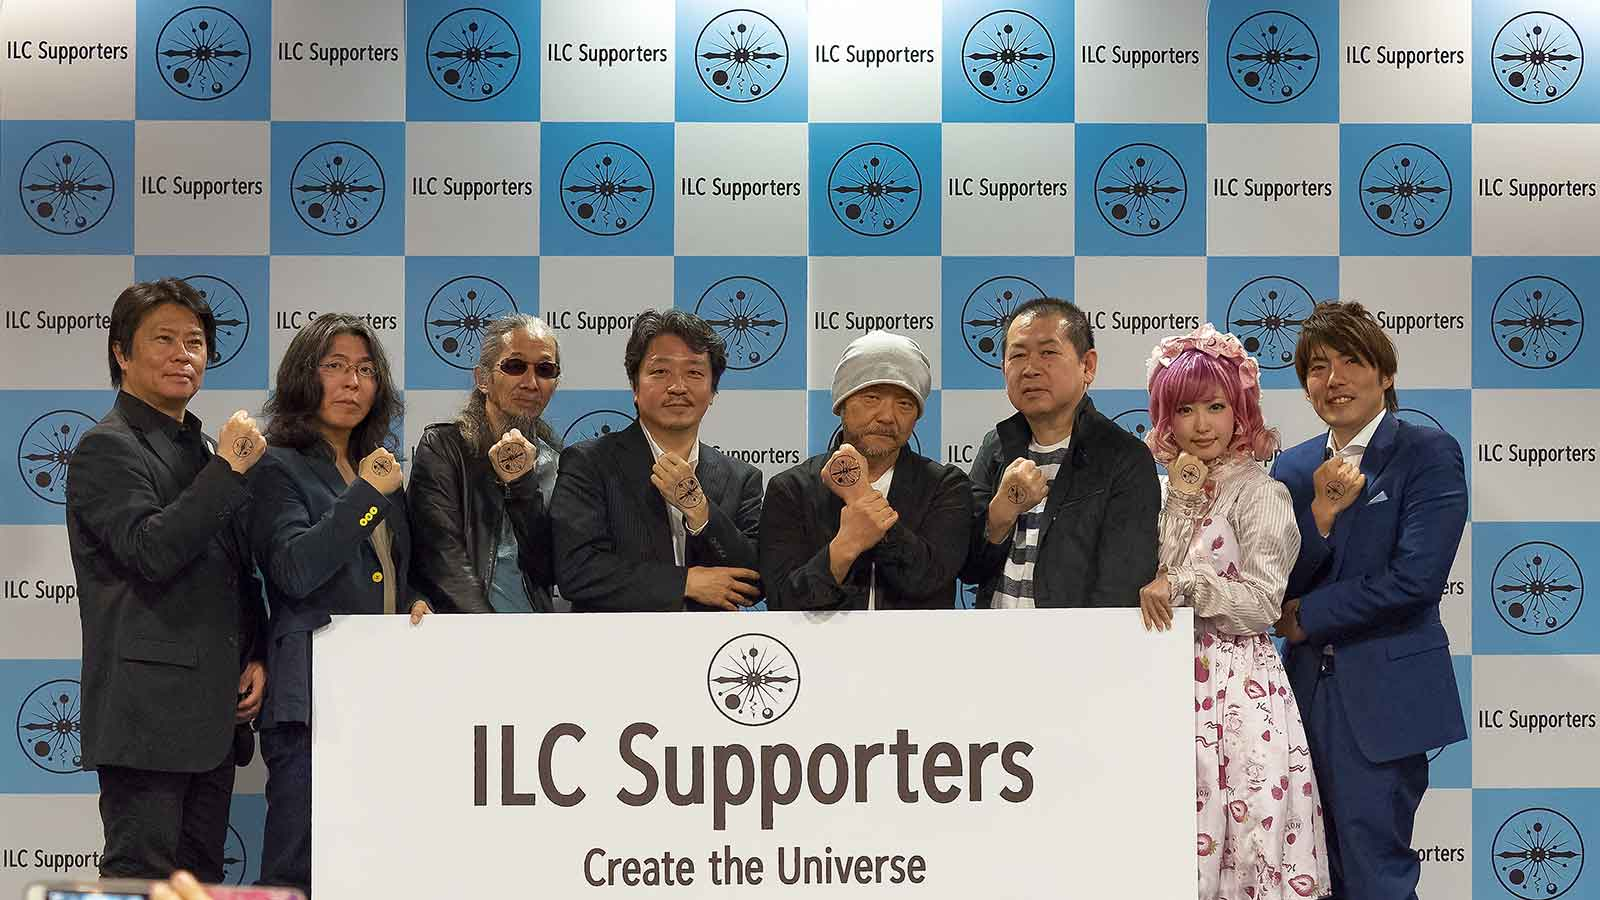 ILC Supporters